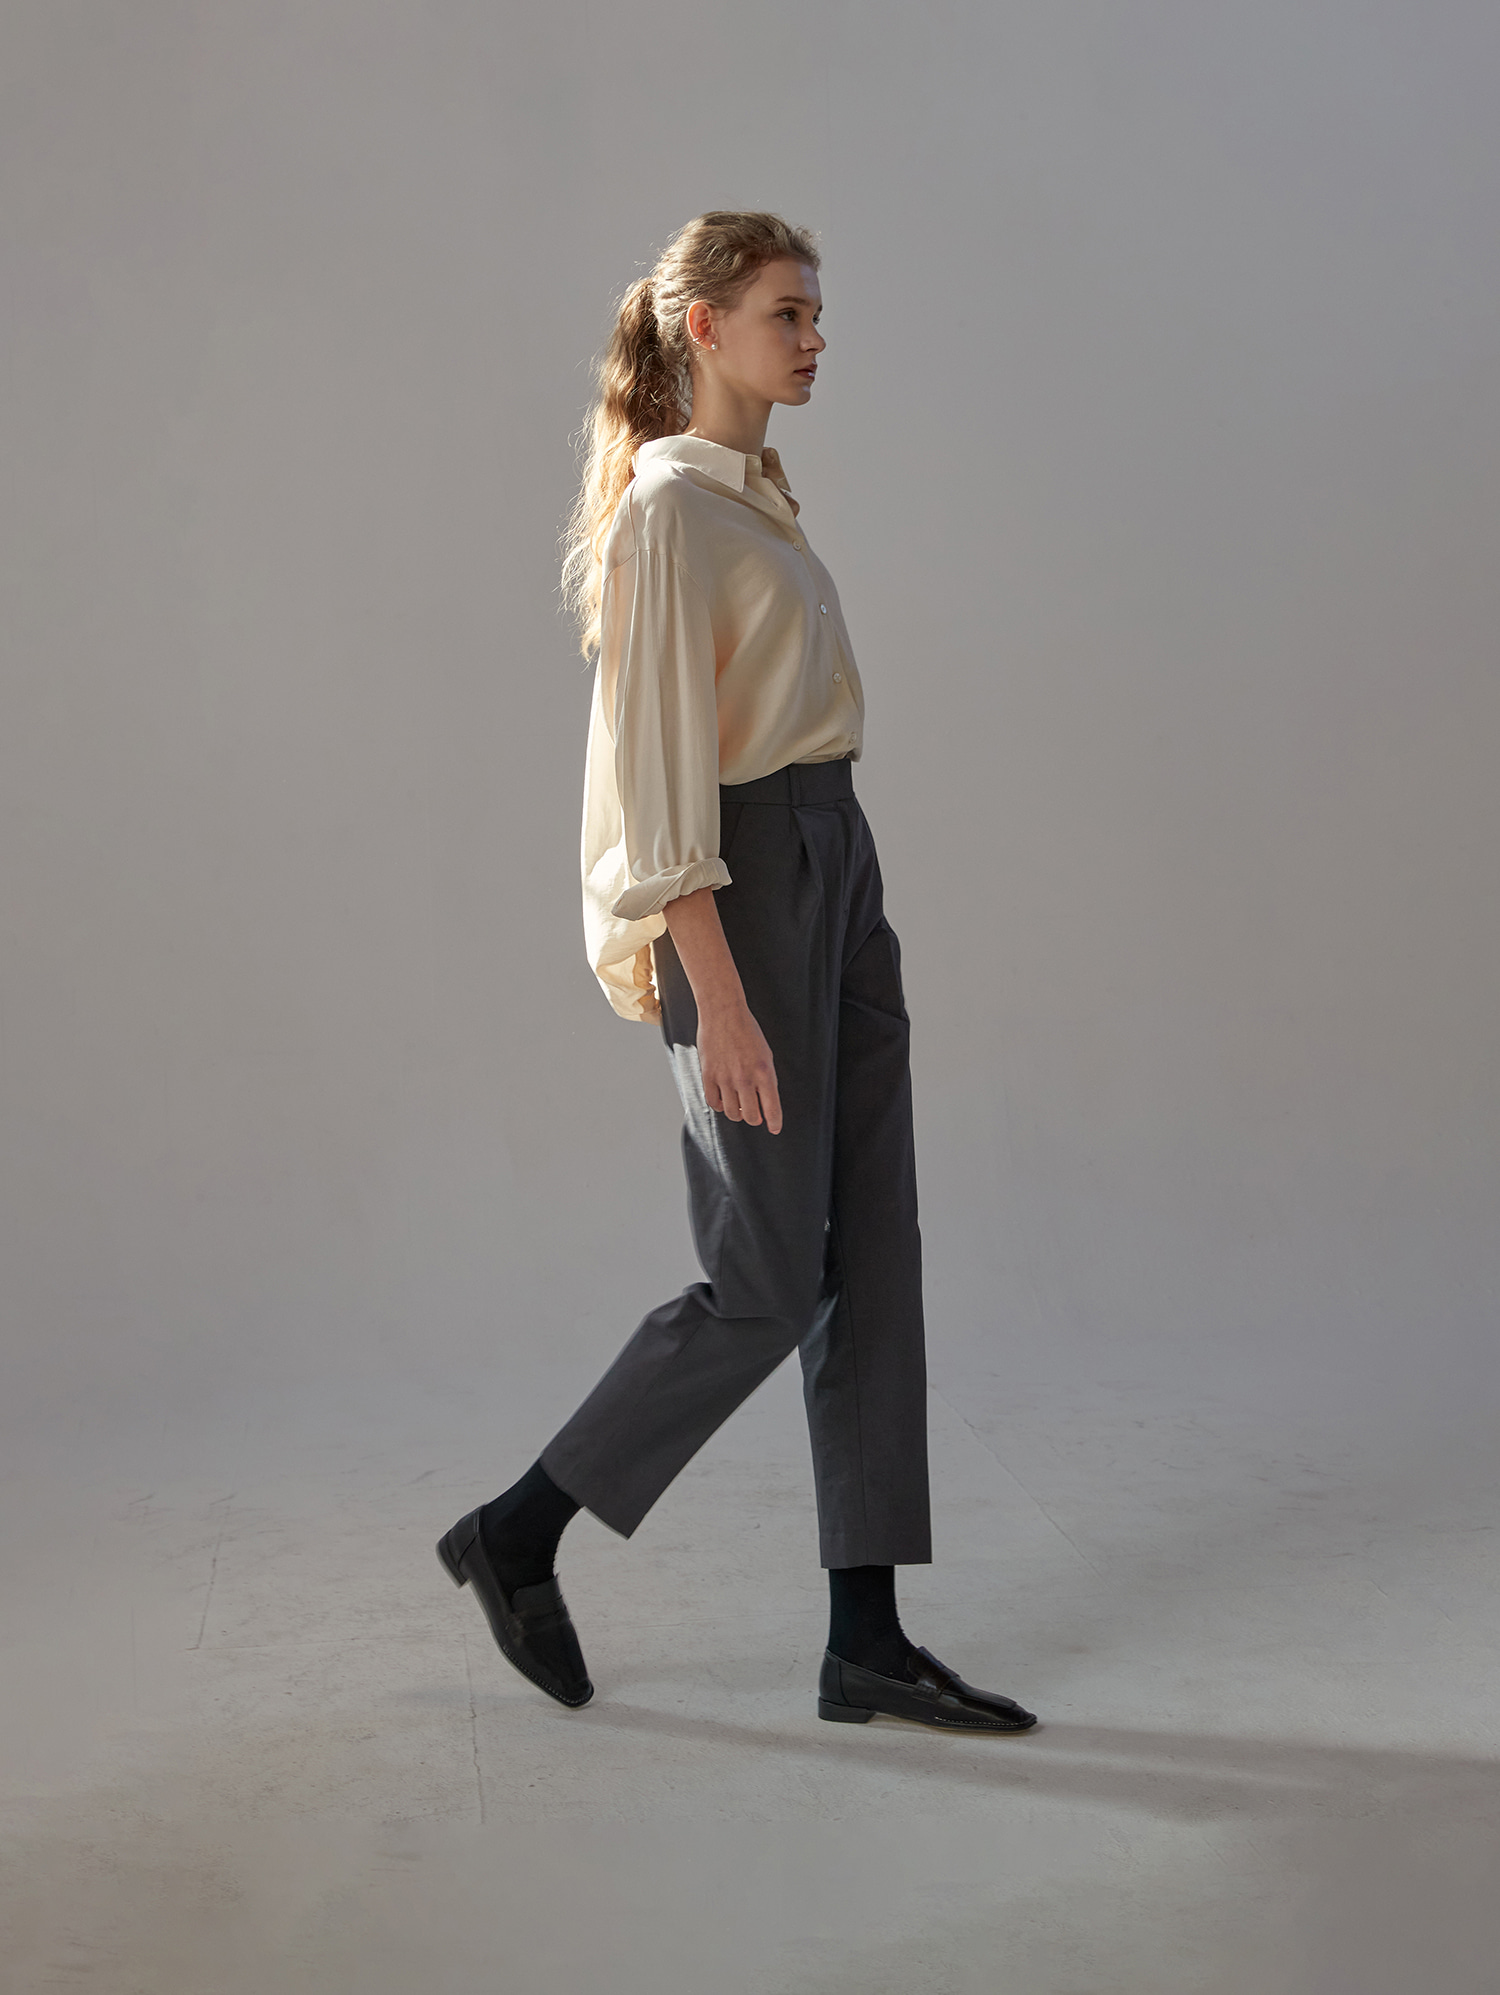 Tapered trousers (charcoal)